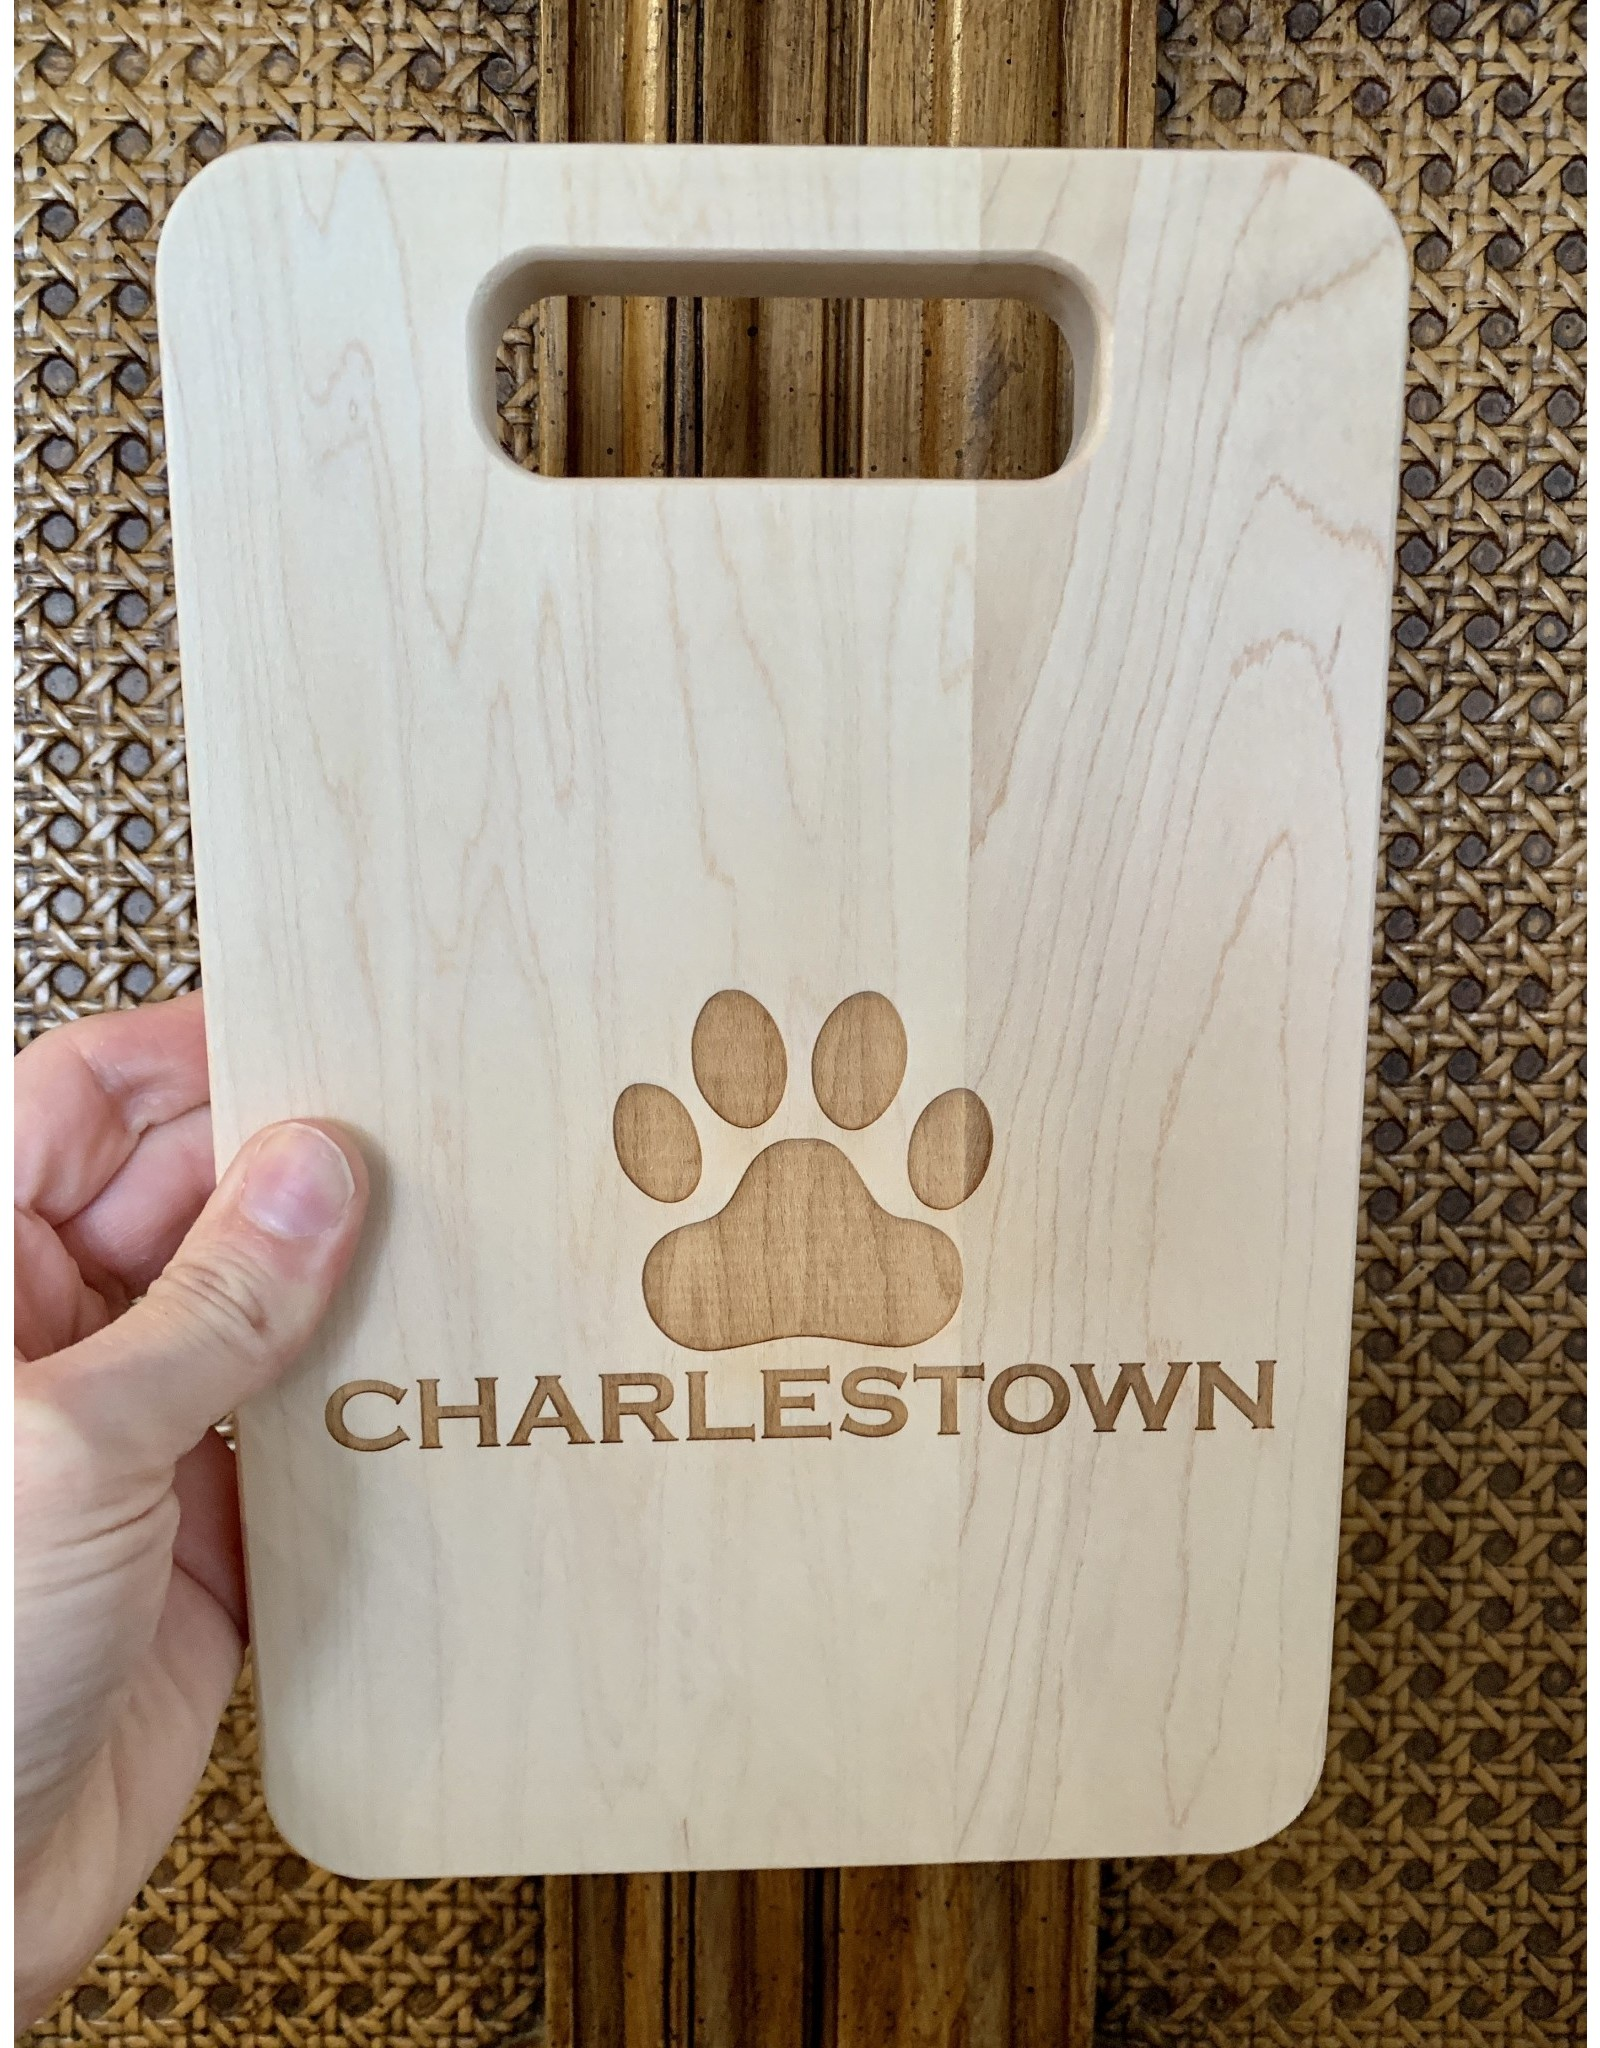 Maple Leaf at Home 9x6 Maple Handled Board Charlestown Dog Paw